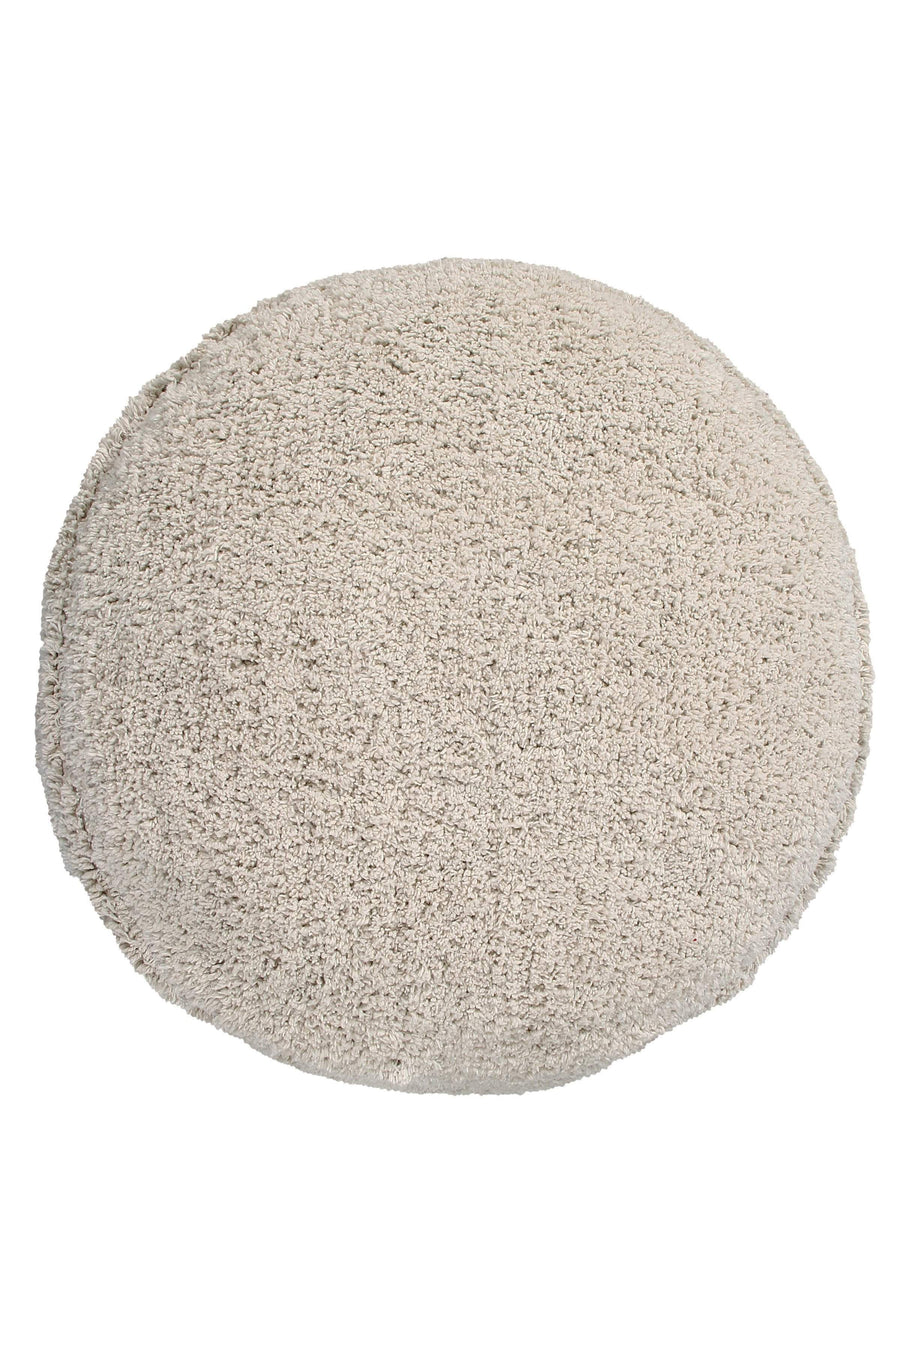 Lorena Canals Pouffe Chill - Natural